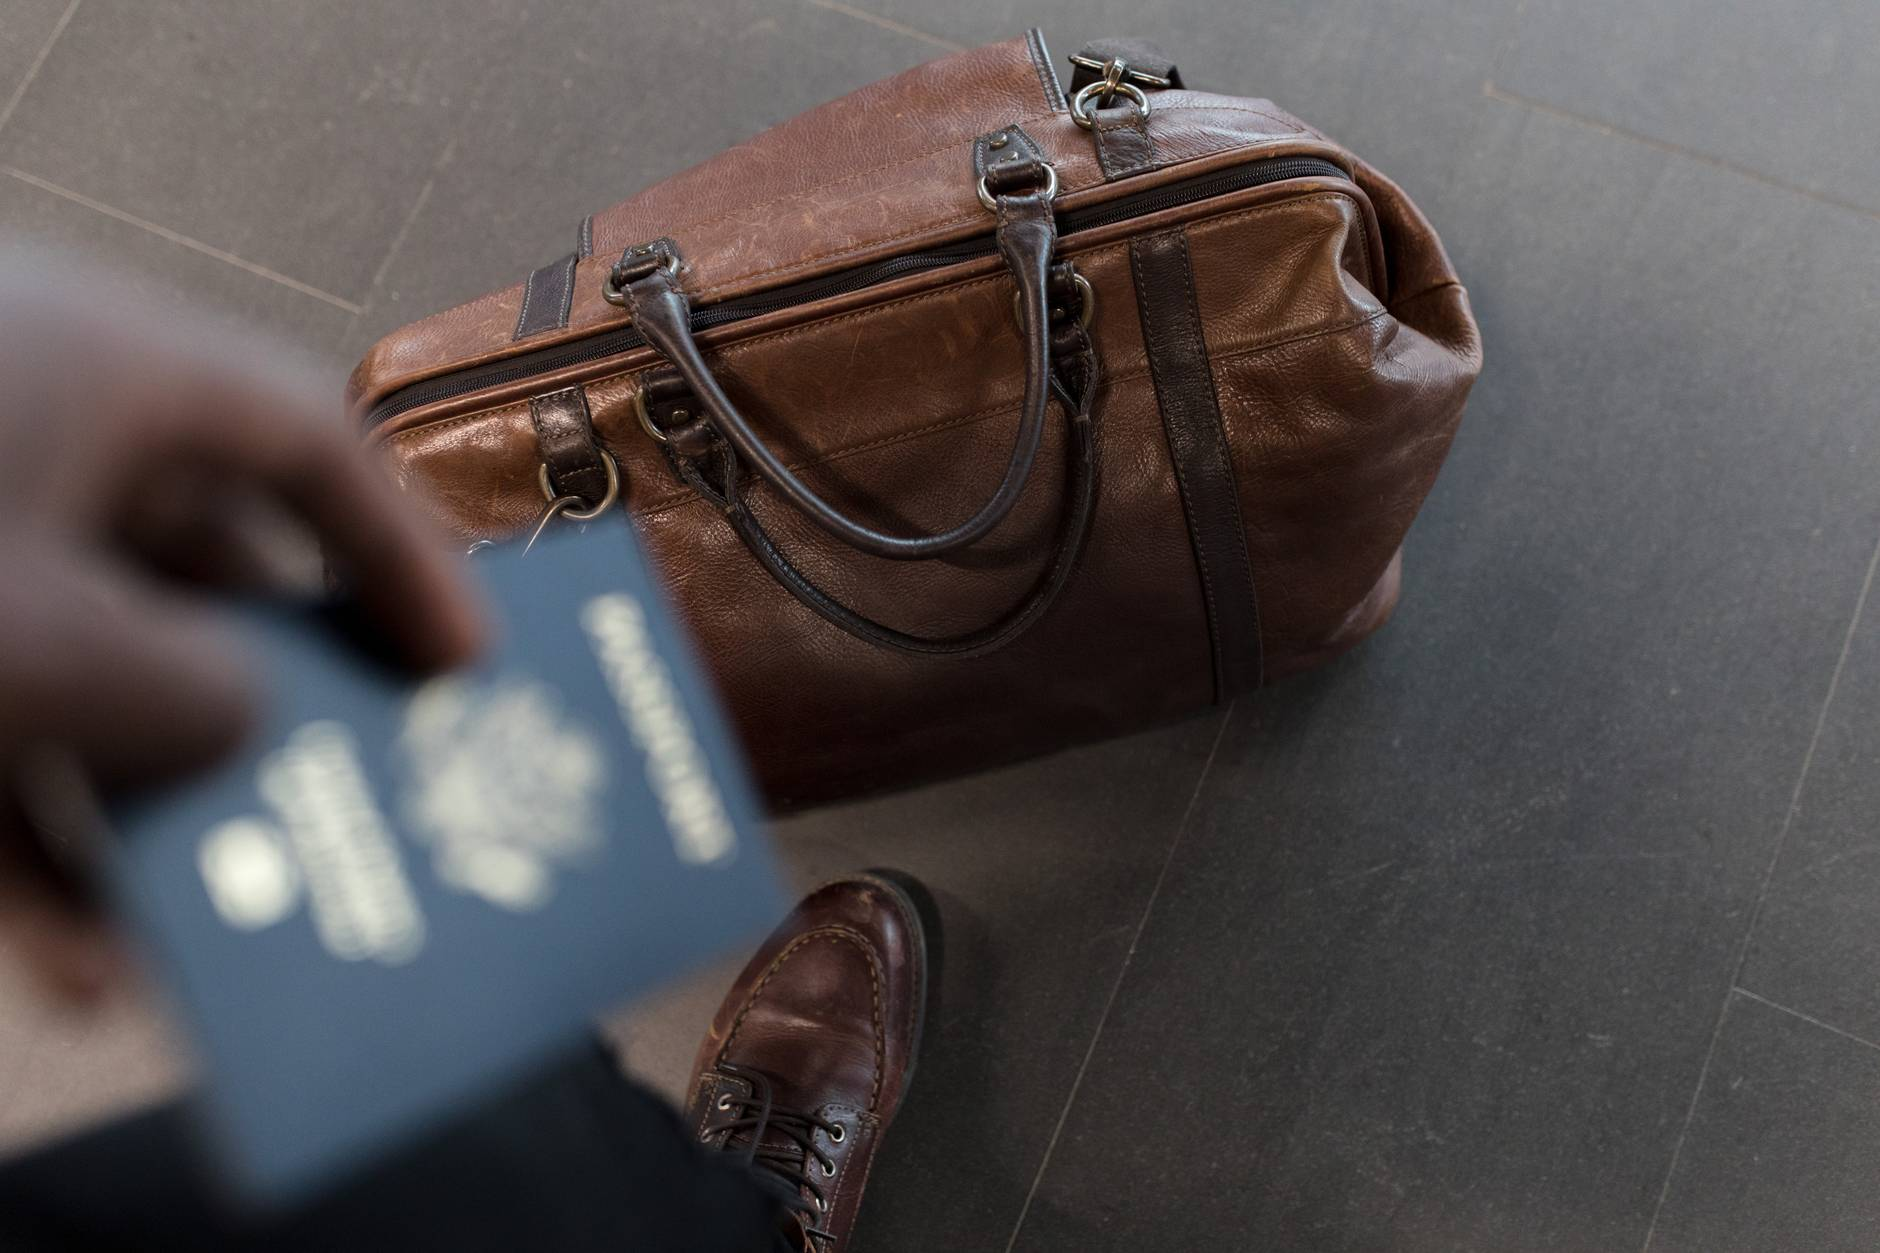 Man with passport and bag